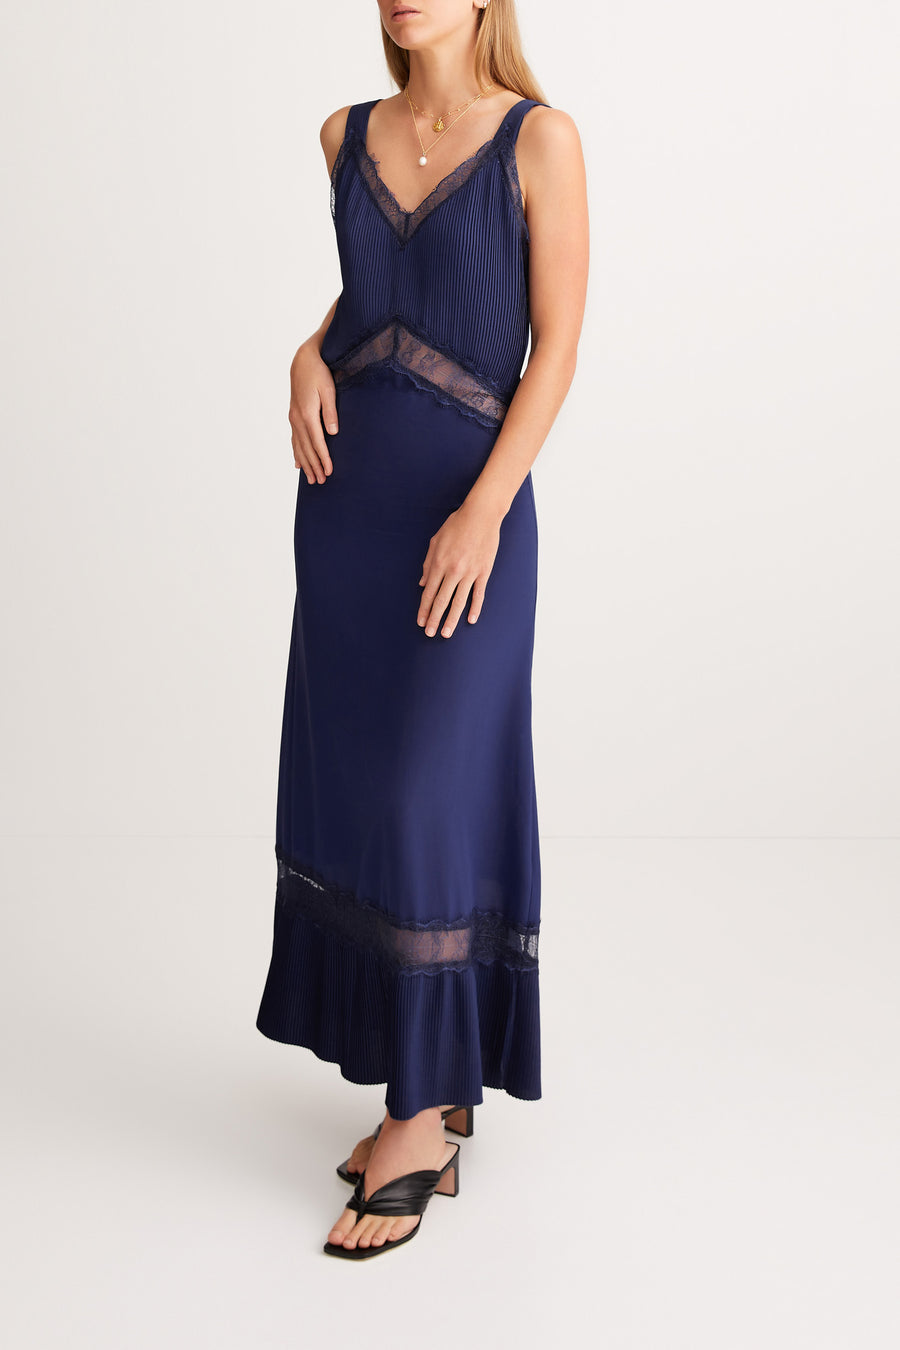 The Osiris Dress {NAVY}